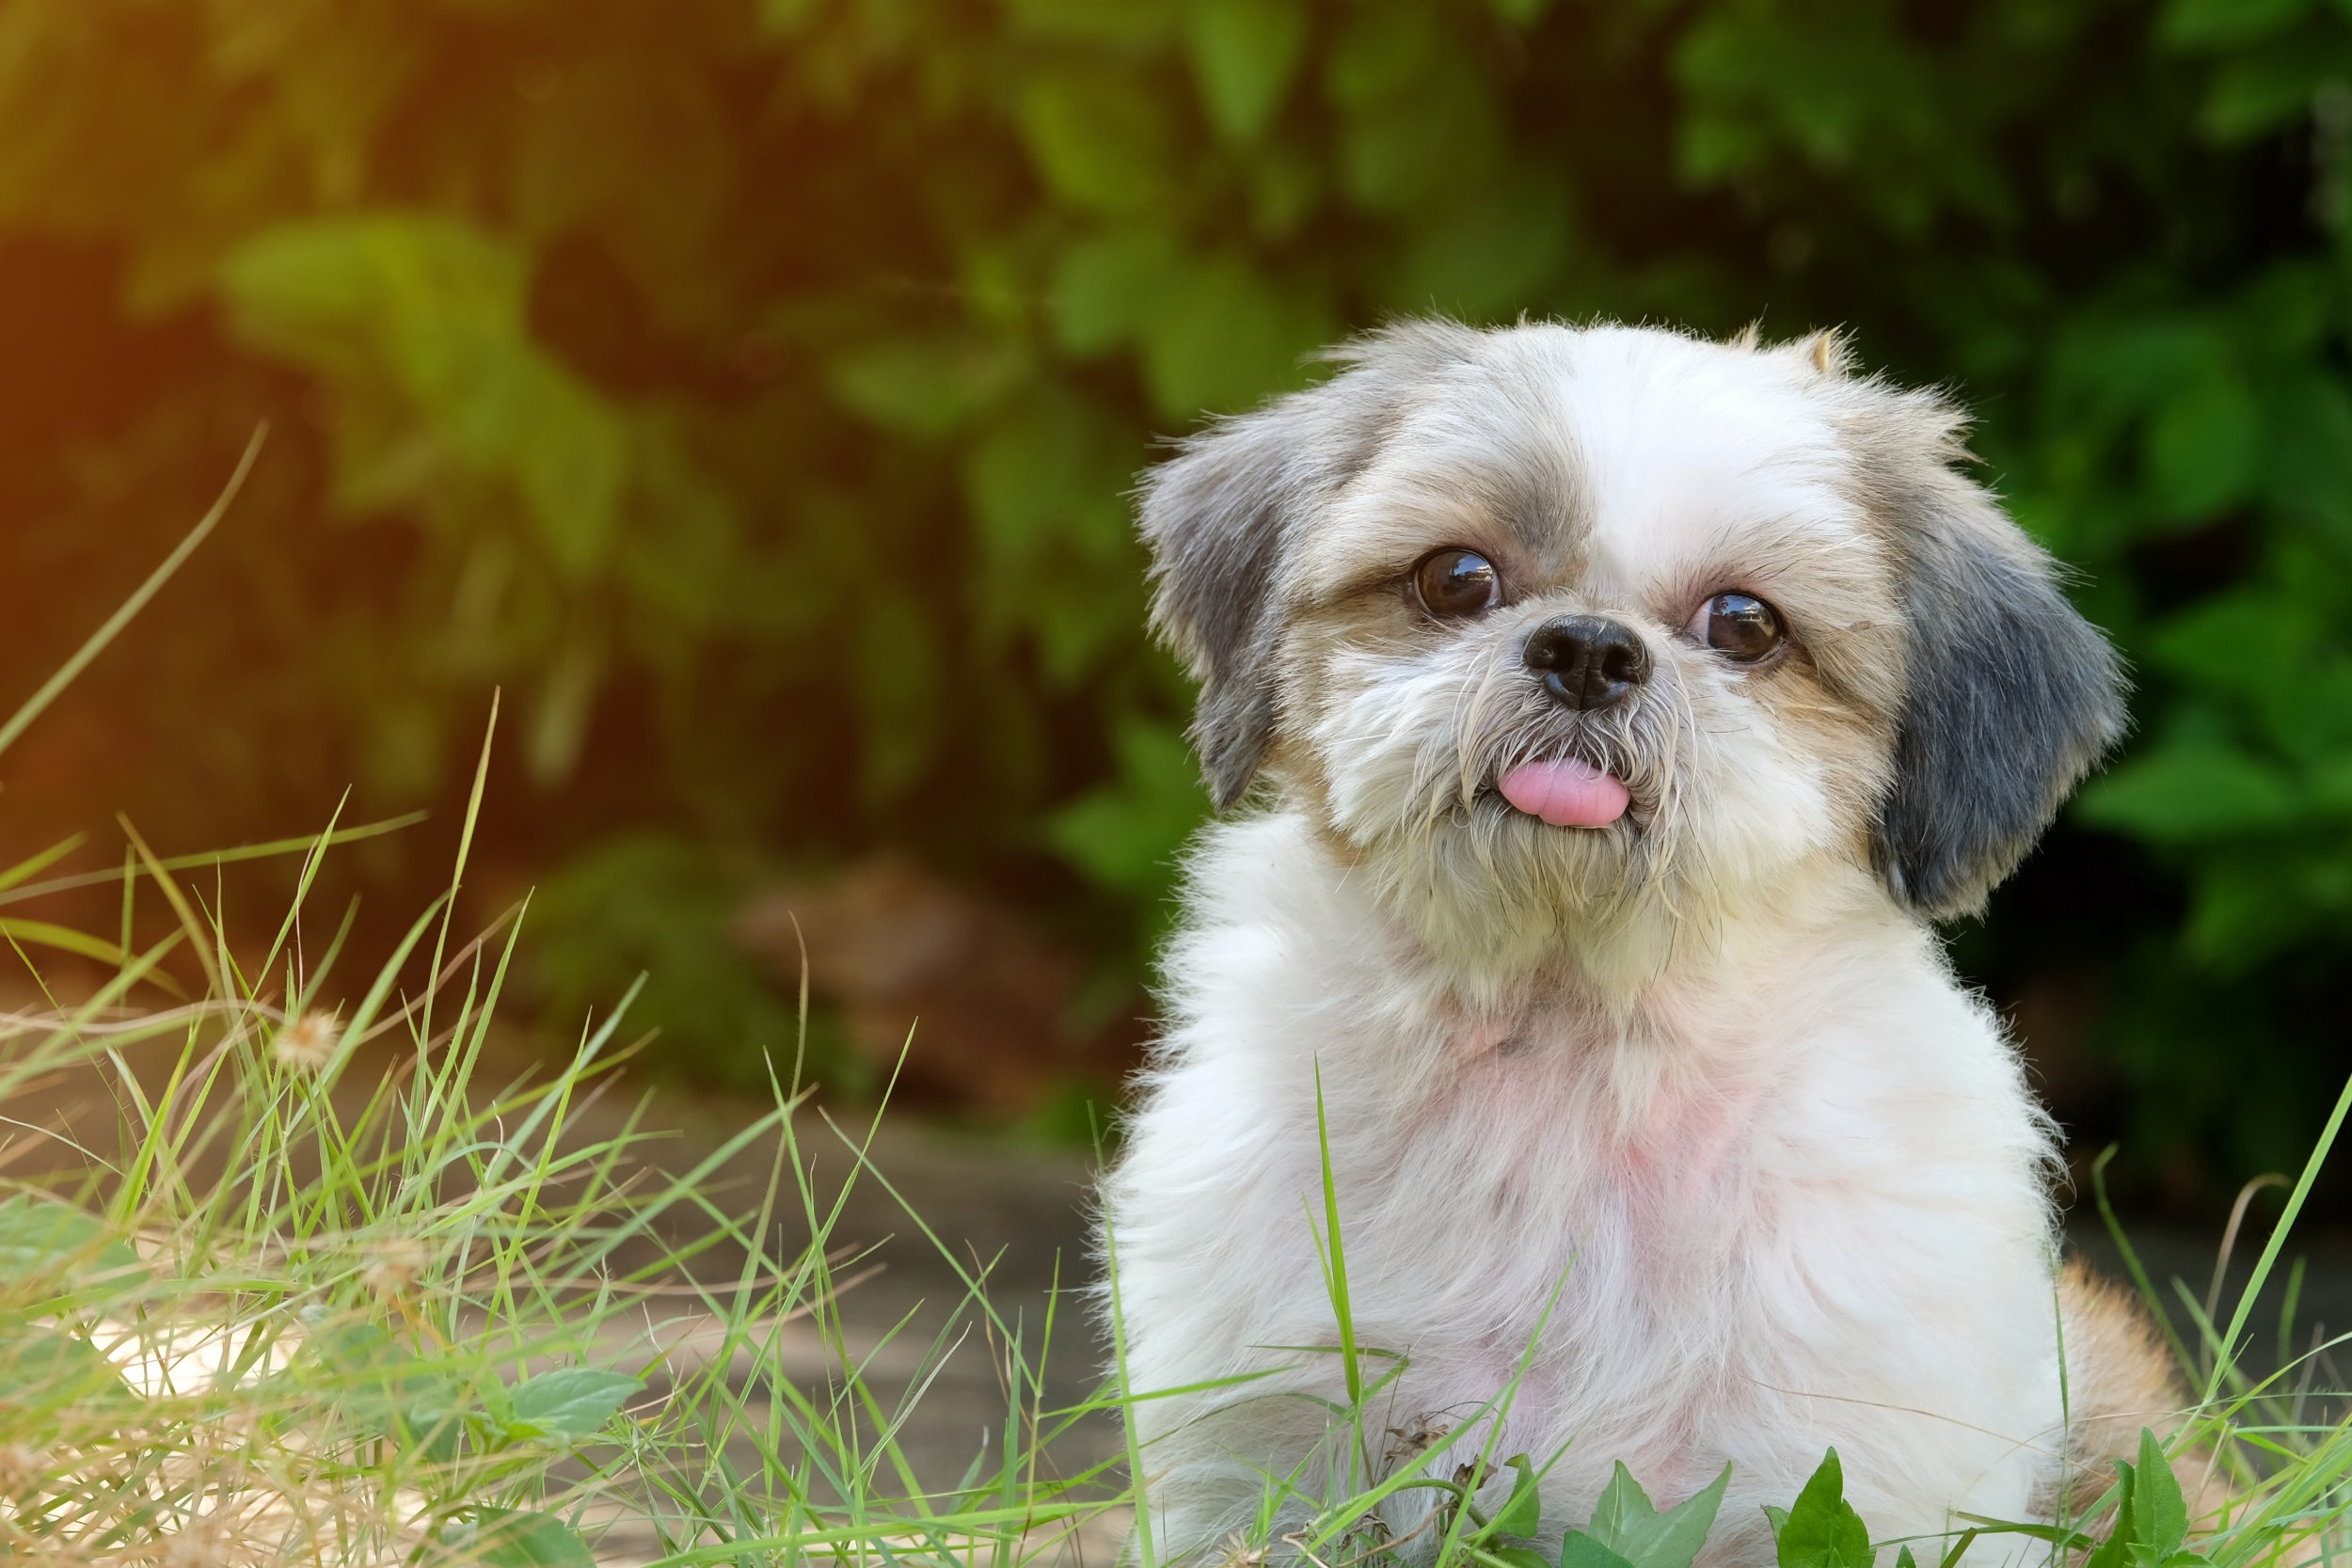 Front innocent face of young Shih Tzu dog, long tongue and doubtful, on green lawn with soft light; Shutterstock ID 785437429; Purchase Order: -